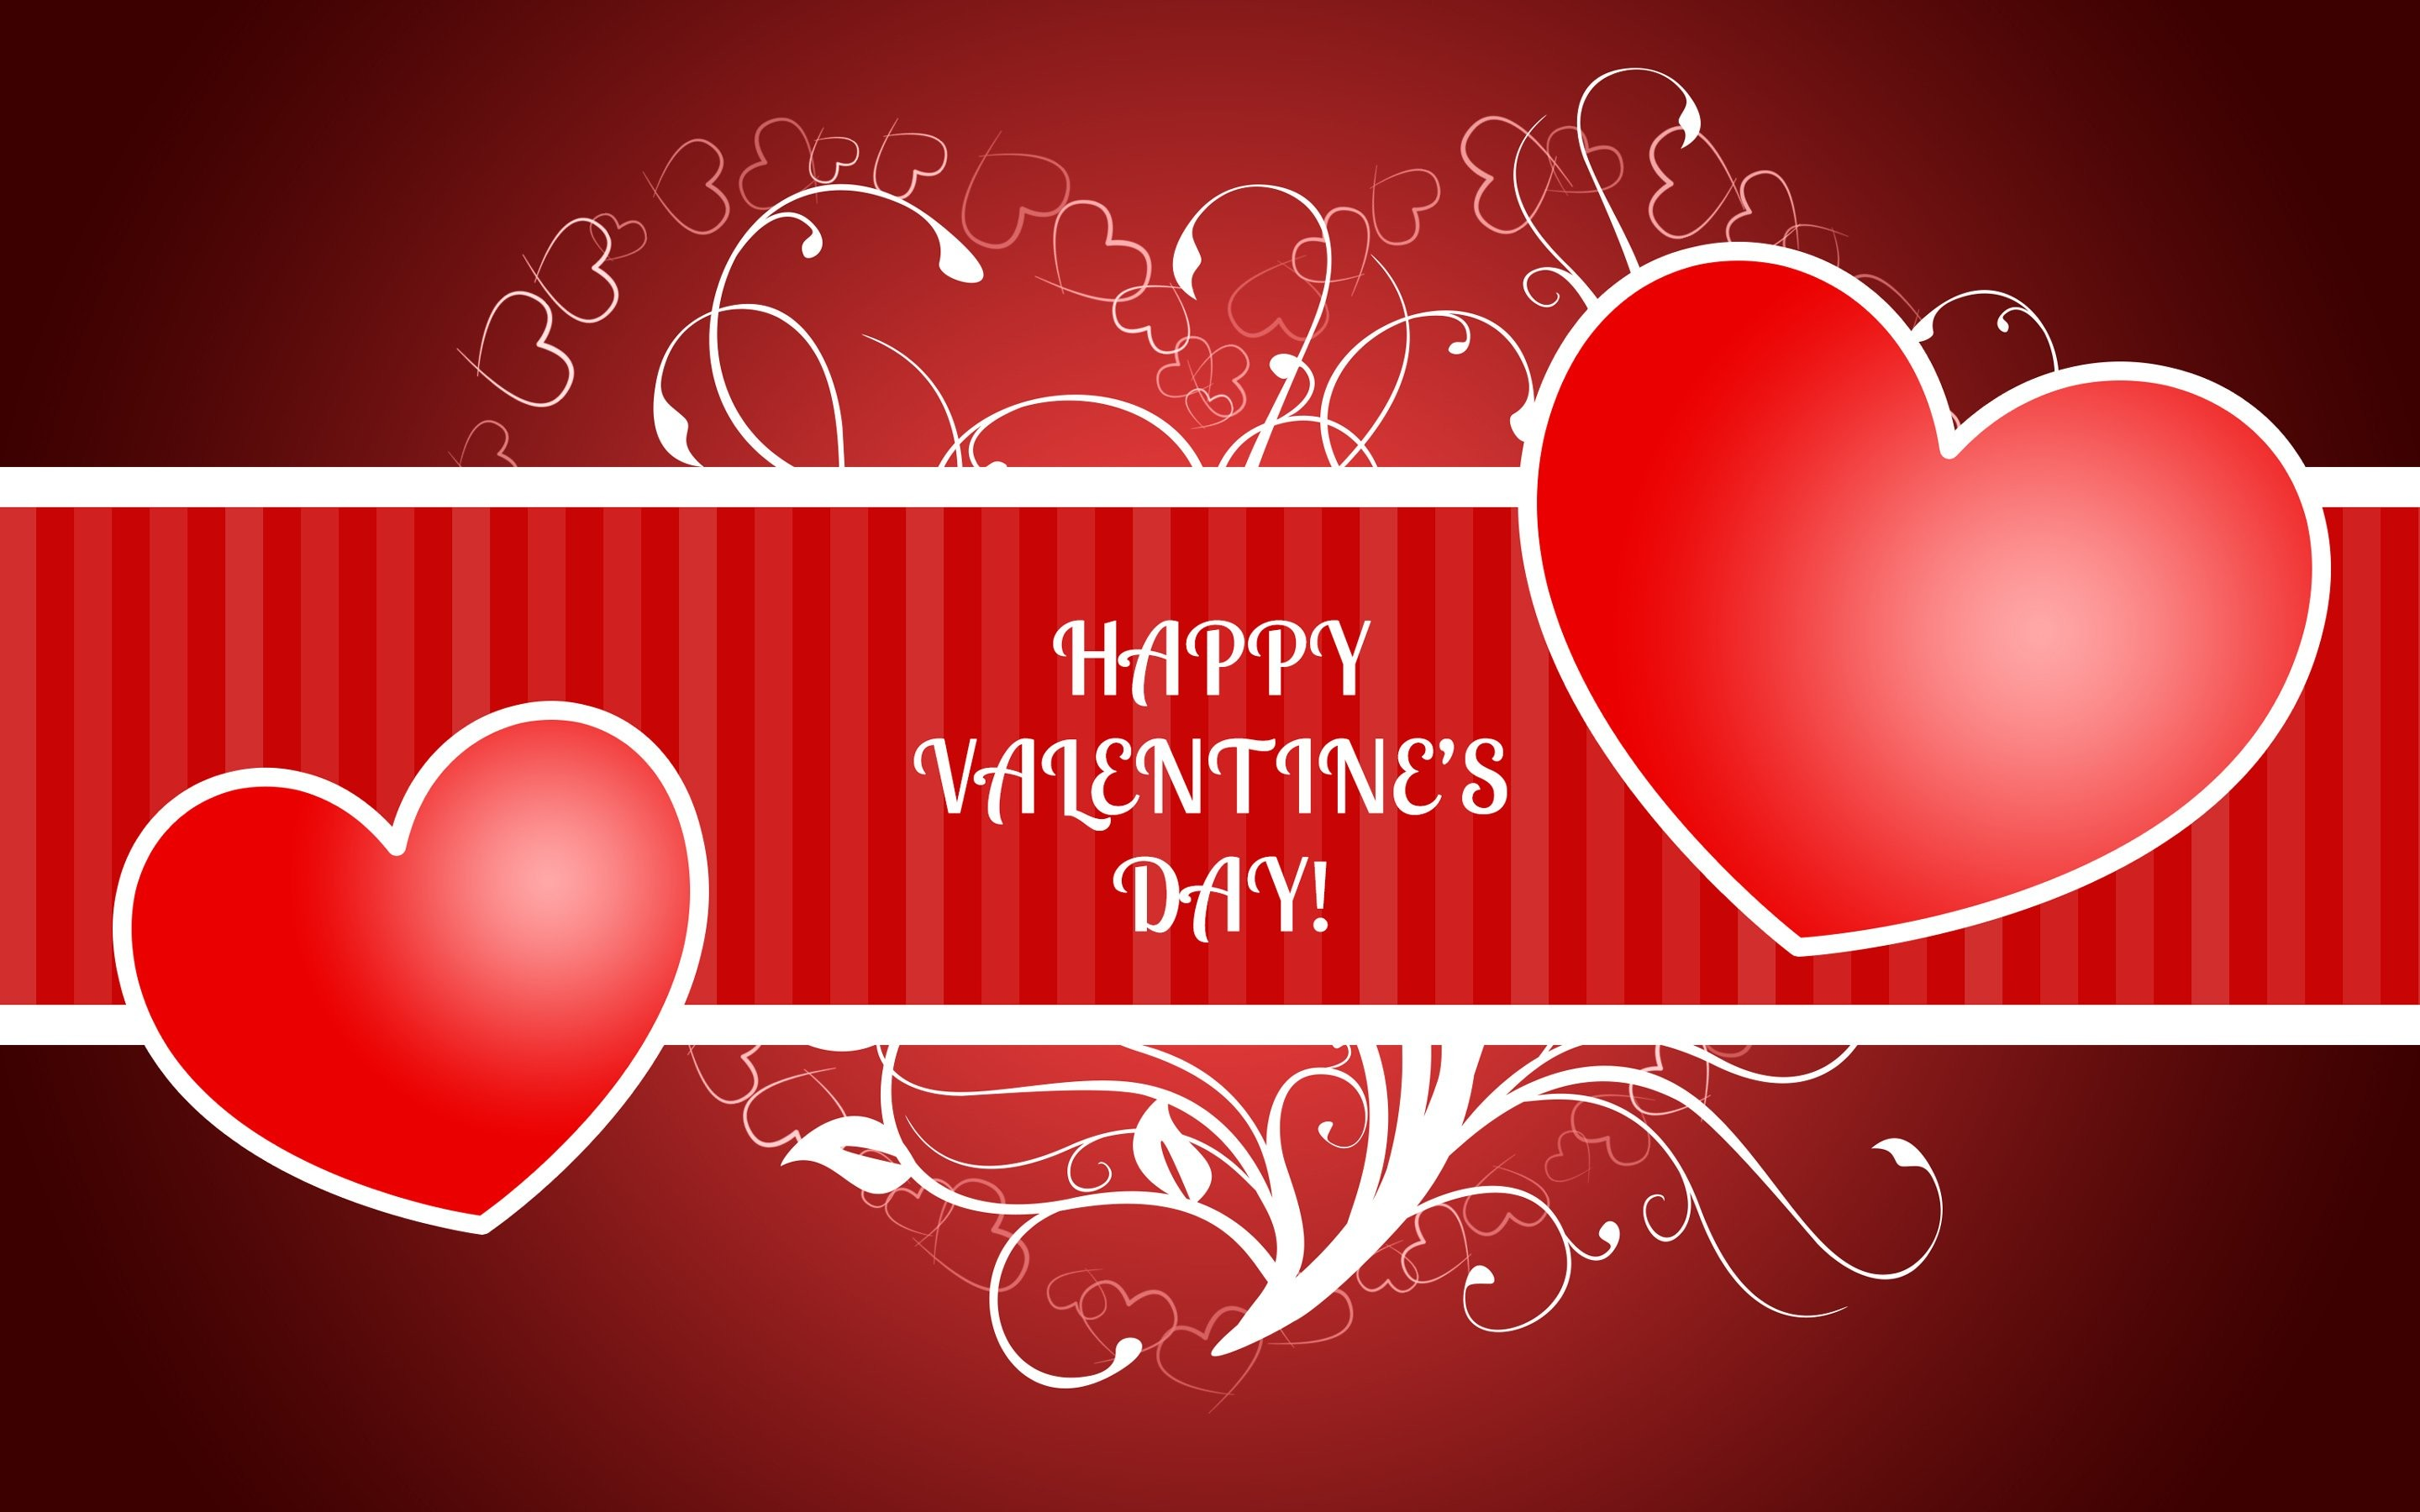 Valentines day wallpaper 76 images - Valentines day background wallpaper ...